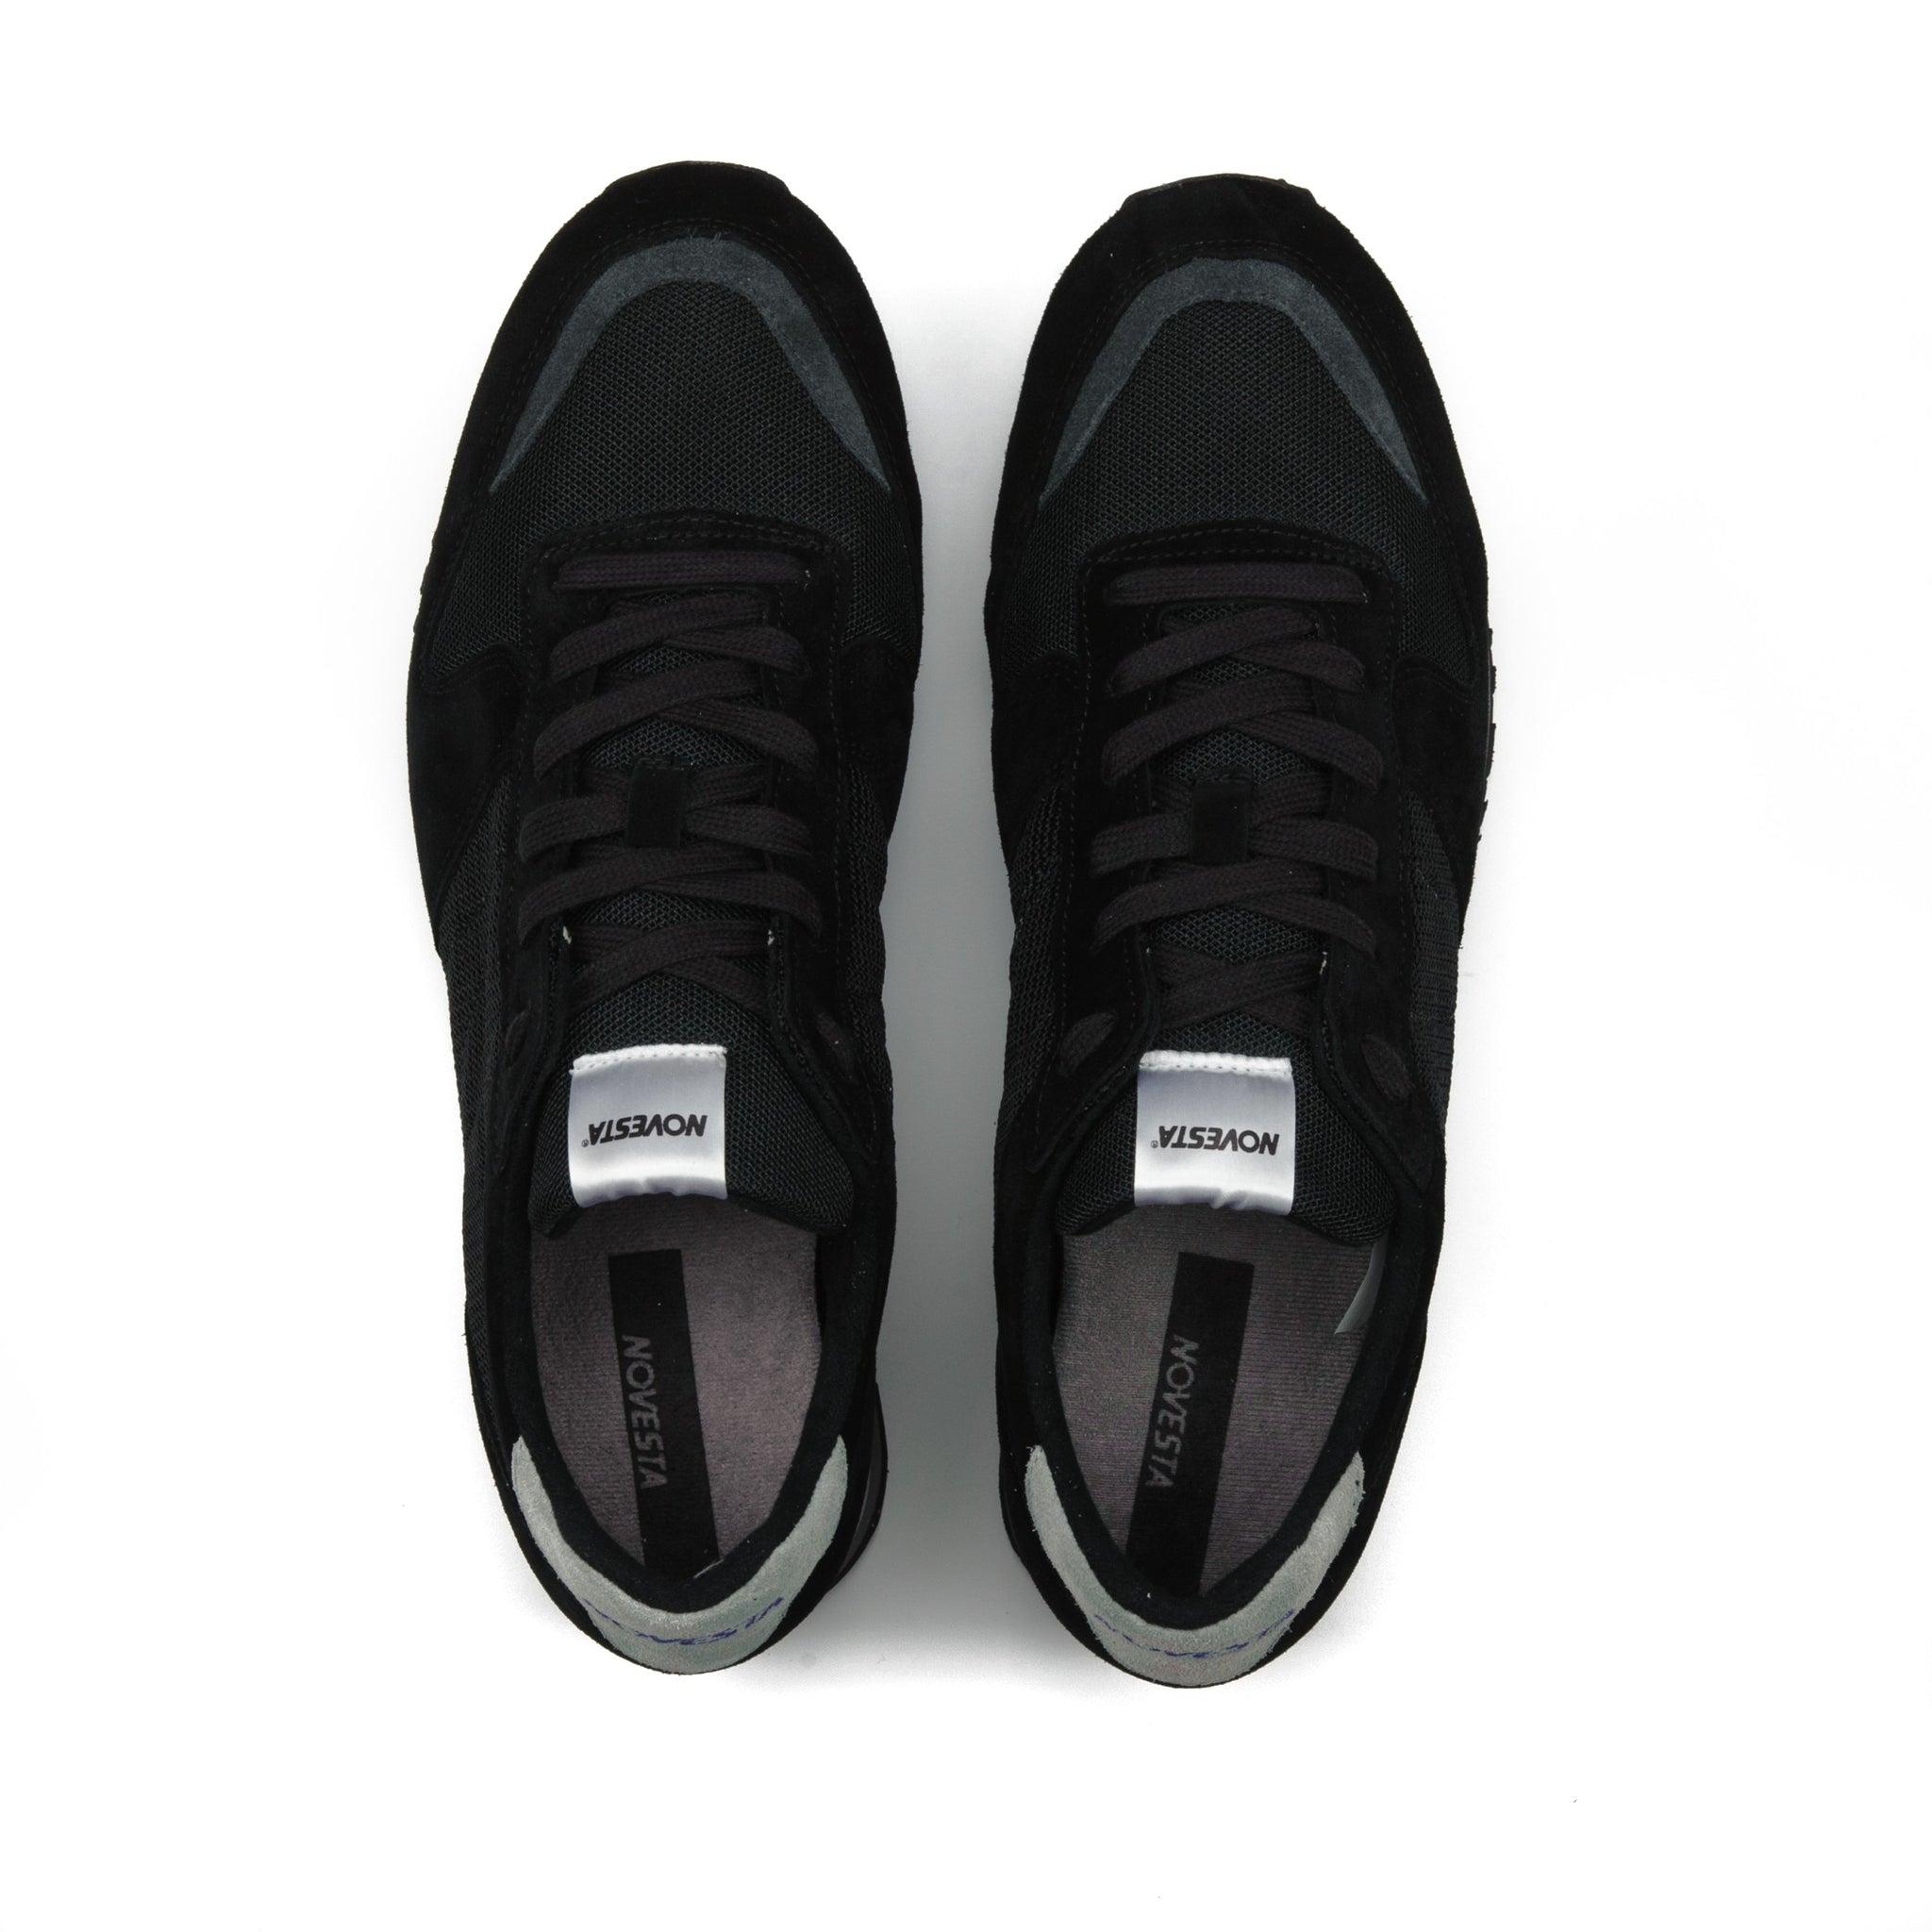 Marathon Sneakers in Black